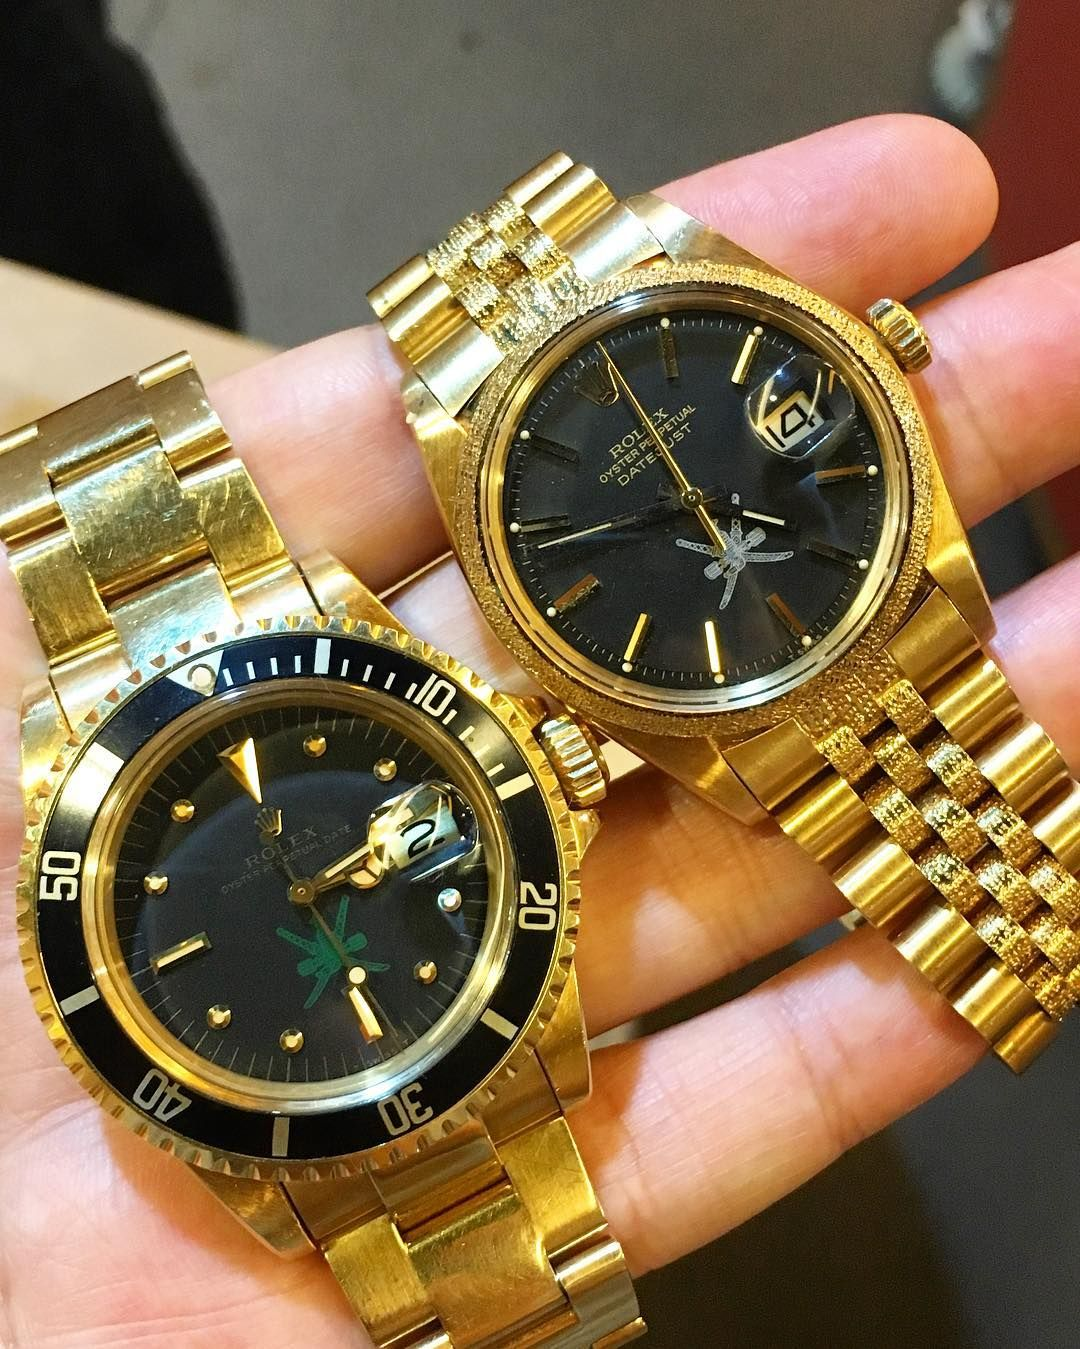 Wrist watch price in oman - A Pair Of Nice Oman Khanjar Submariner Datejust At The Hk Gtg By Jwlife37 Rolex